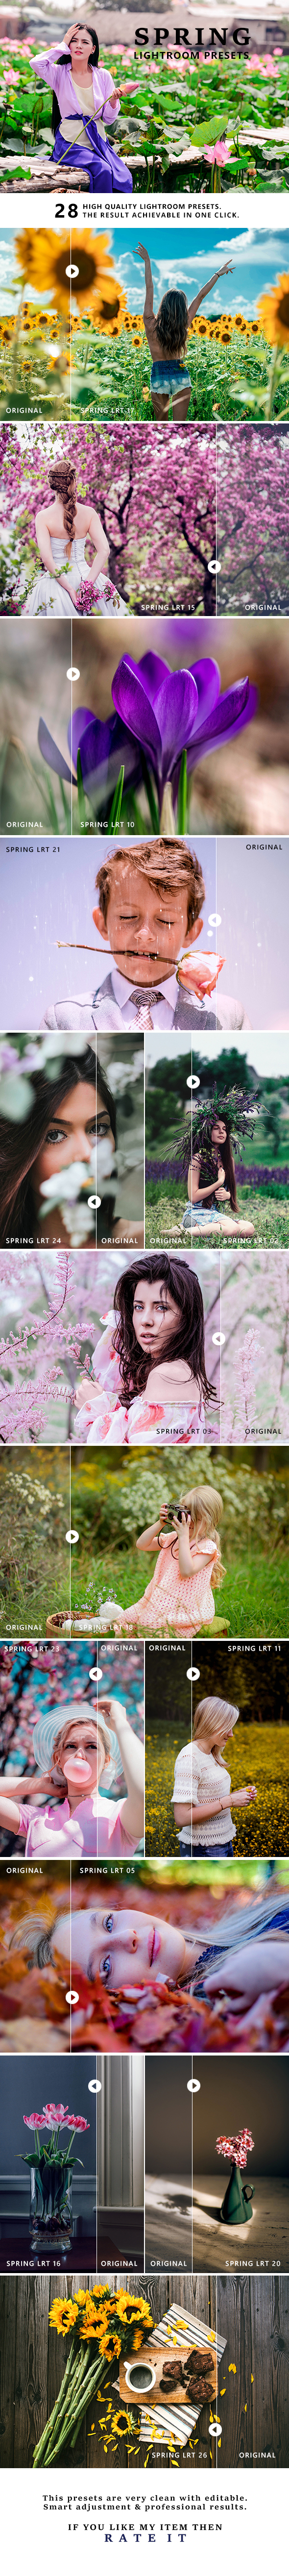 Spring Pro Lightroom Presets - Lightroom Presets Add-ons